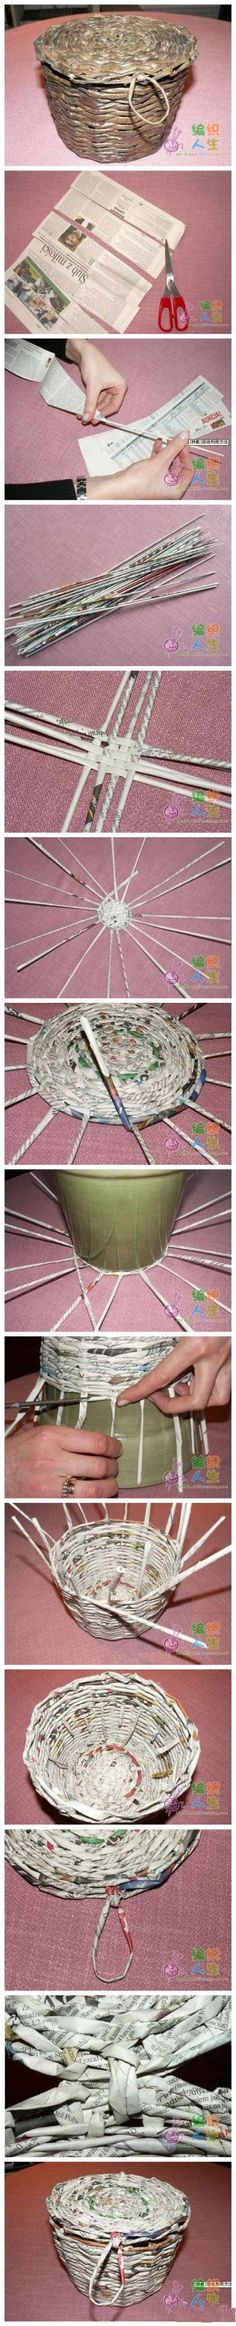 DIY Tutorial: DIY Weaving / DIY newspaper basket making - Bead&Cord Going to try this to make a basket similar to what Moses was placed in. Newspaper Basket, Newspaper Crafts, Diy Arts And Crafts, Fun Crafts, Diy Paper, Paper Crafting, Paper Clay, Paper Basket Weaving, Origami